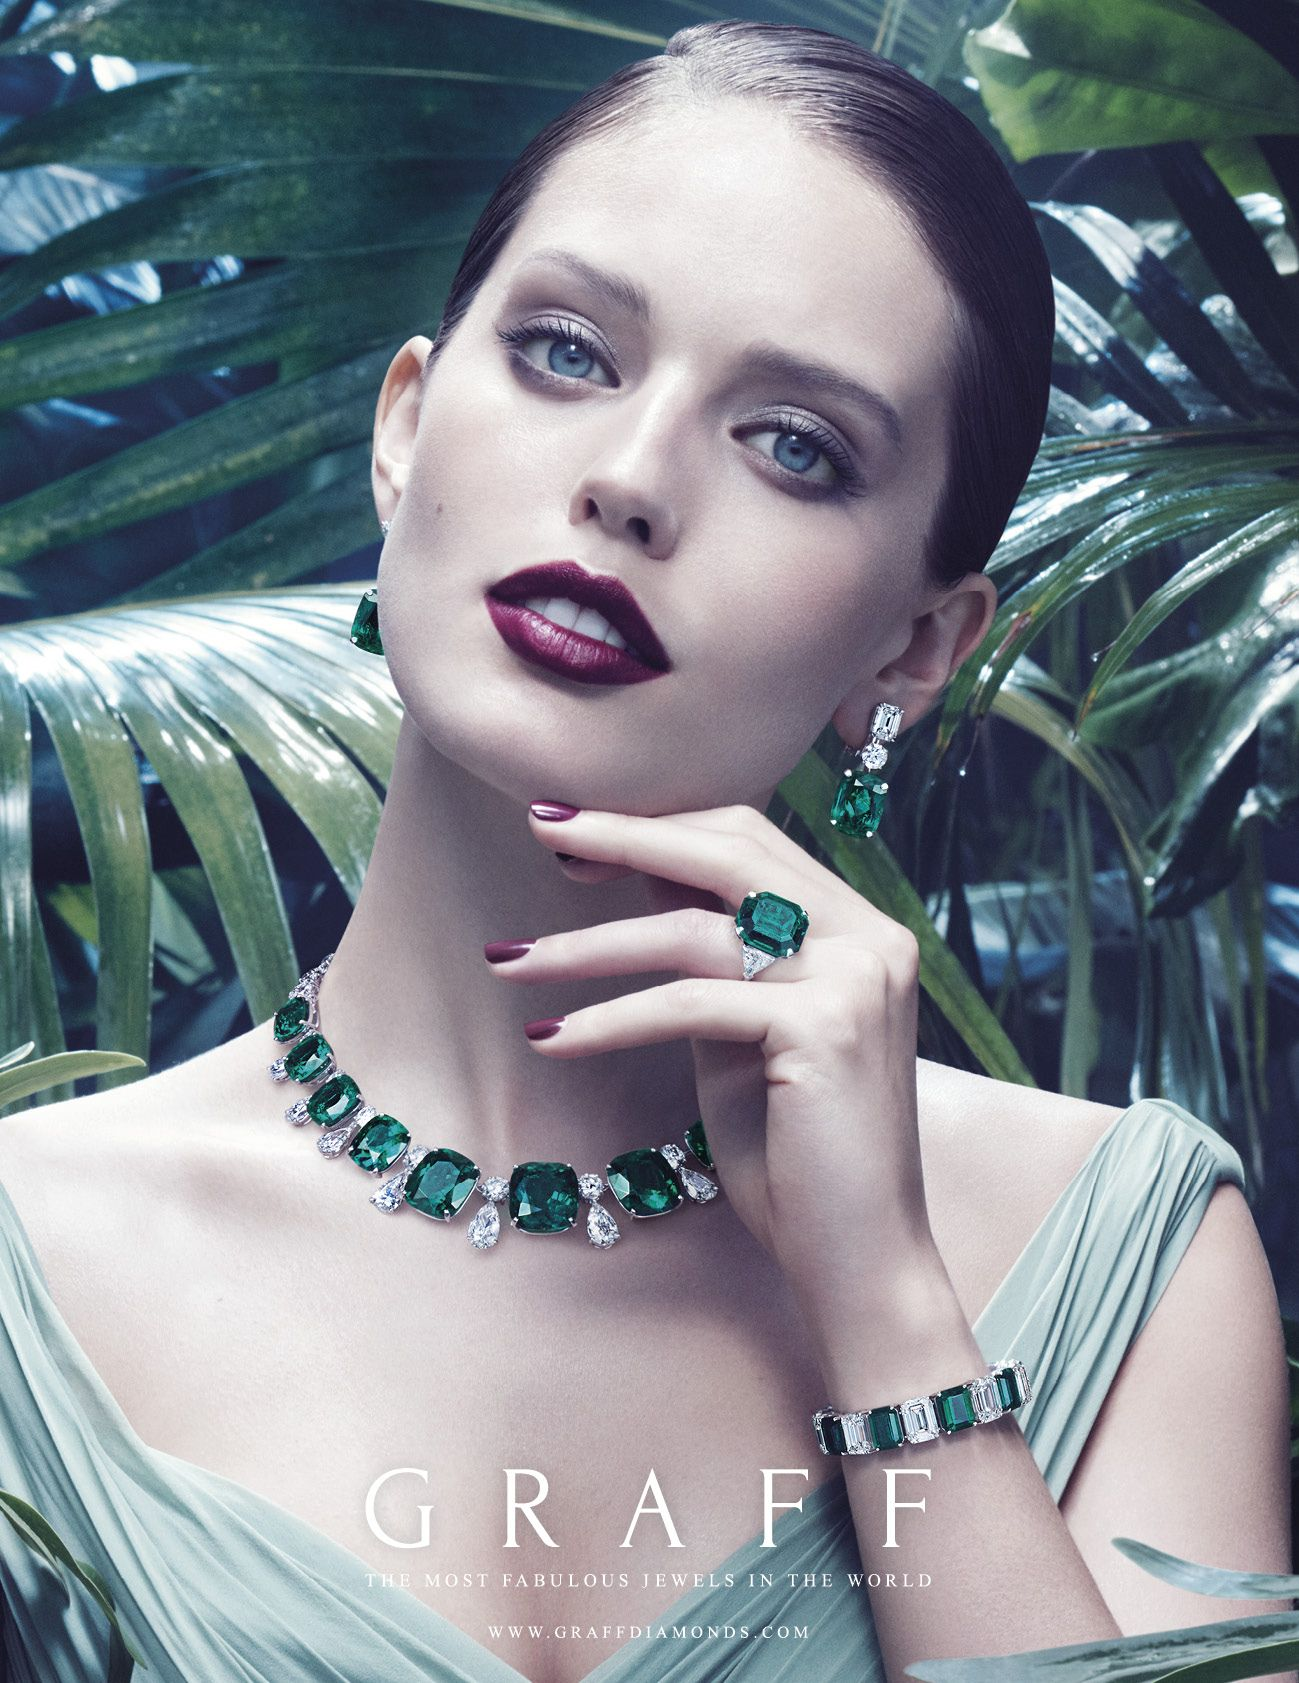 The Ultimate Element - Earth A truly spectacular gift from Mother Nature, exceptional emeralds exemplify one of earth's rare wonders with captivating appeal in Graff's new advertising campaign. #GraffDiamonds #Earth